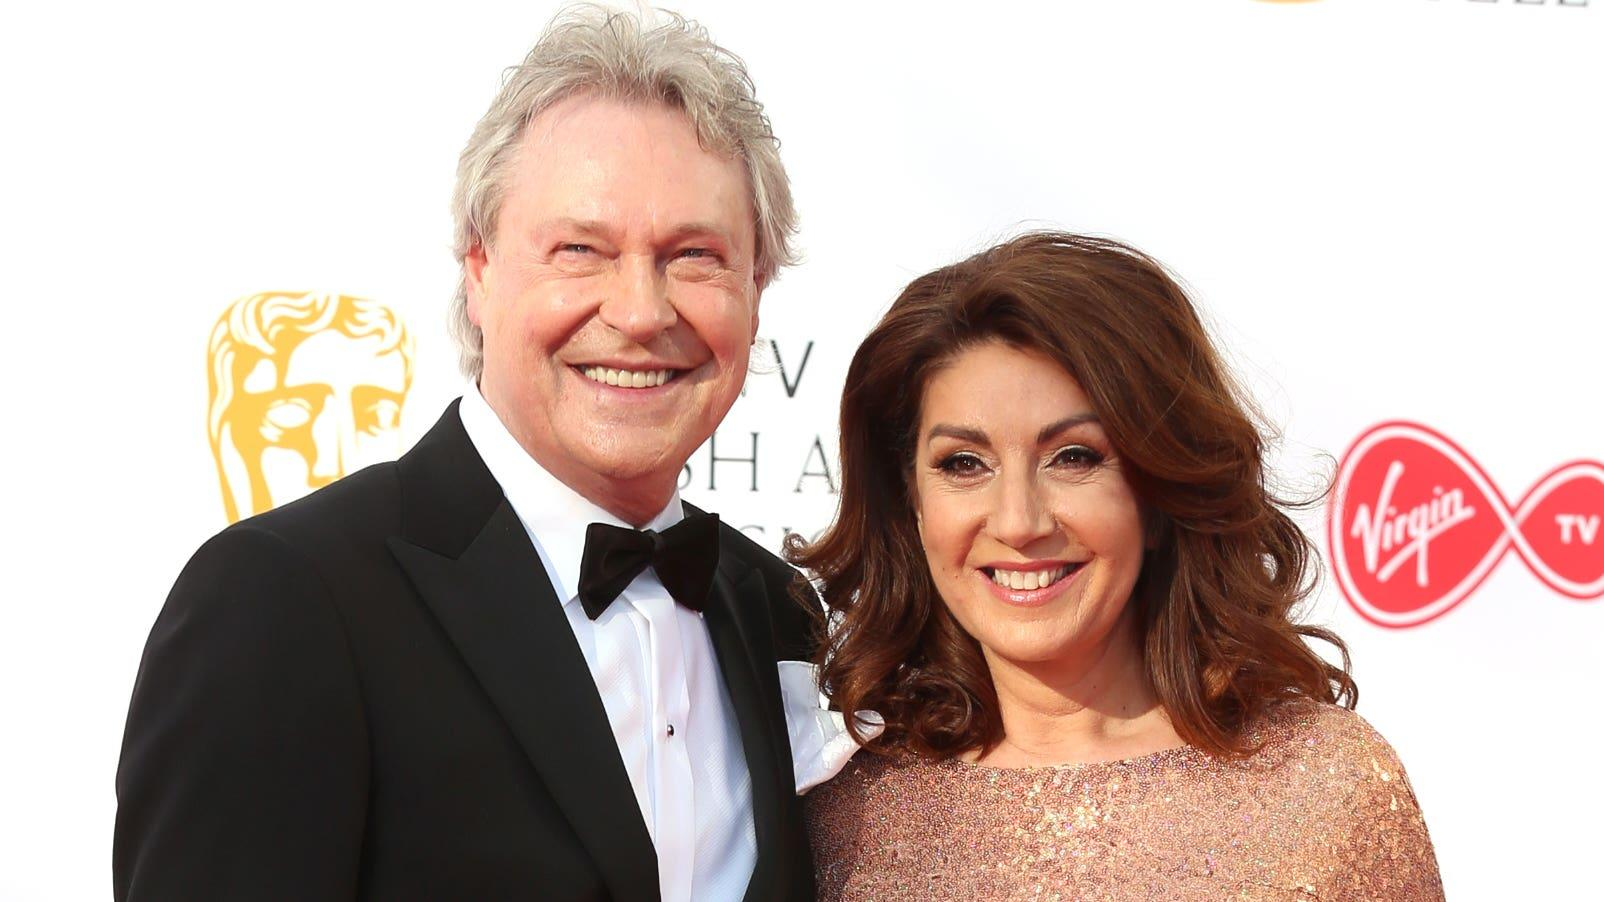 Jane McDonald's Husband Eddie Rothe Wikipedia, Death Cause, Age, Net Worth, Biography